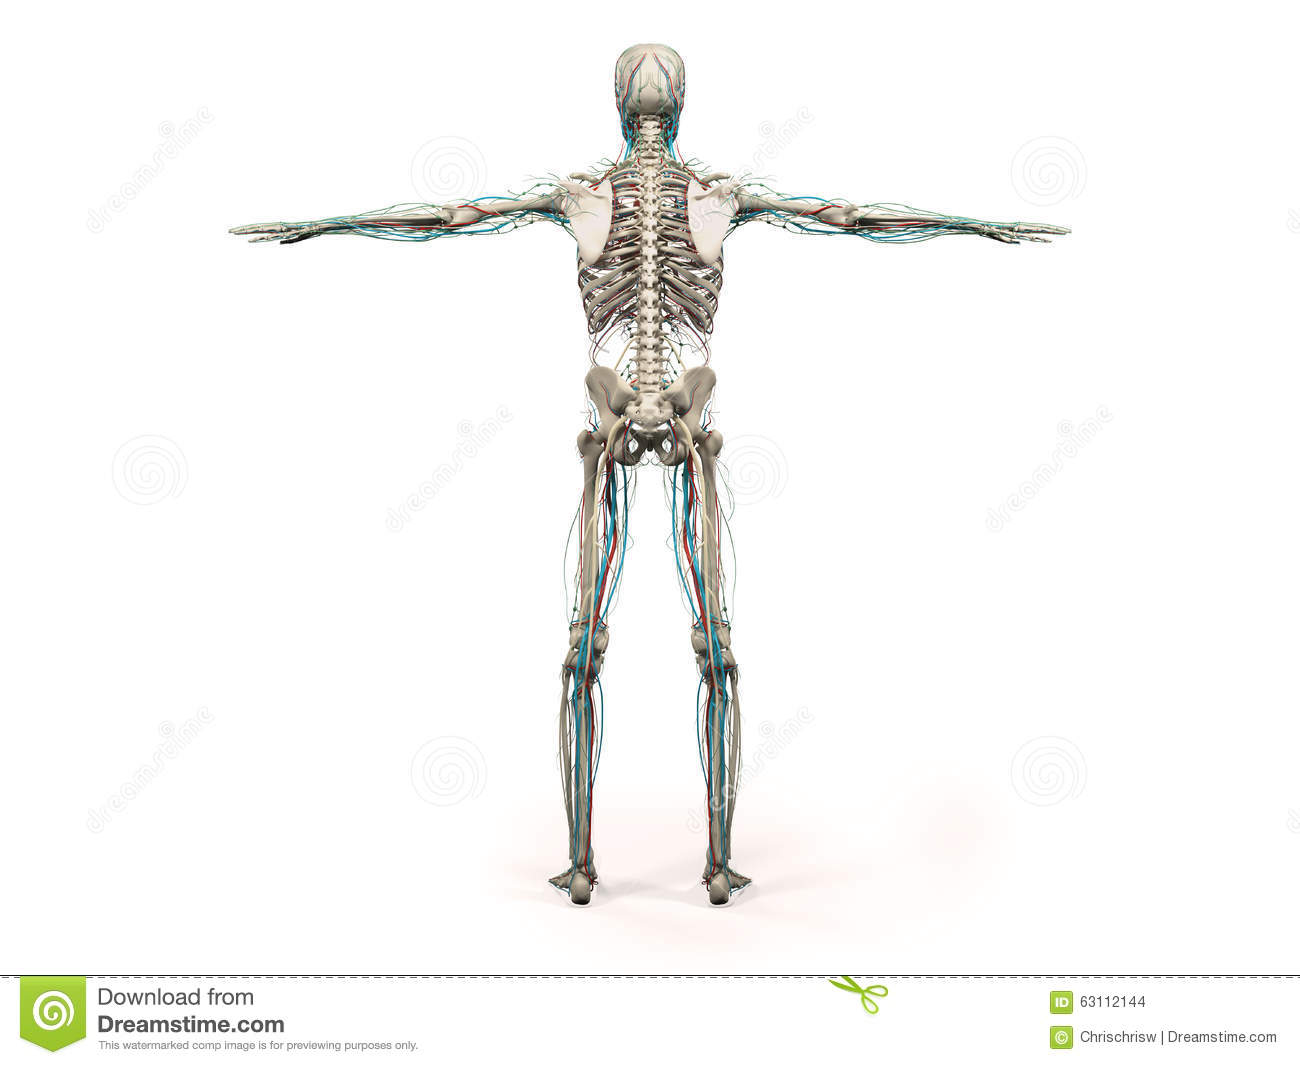 hight resolution of human anatomy showing back full body head shoulders and torso bone structure and vascular system on a plain white background